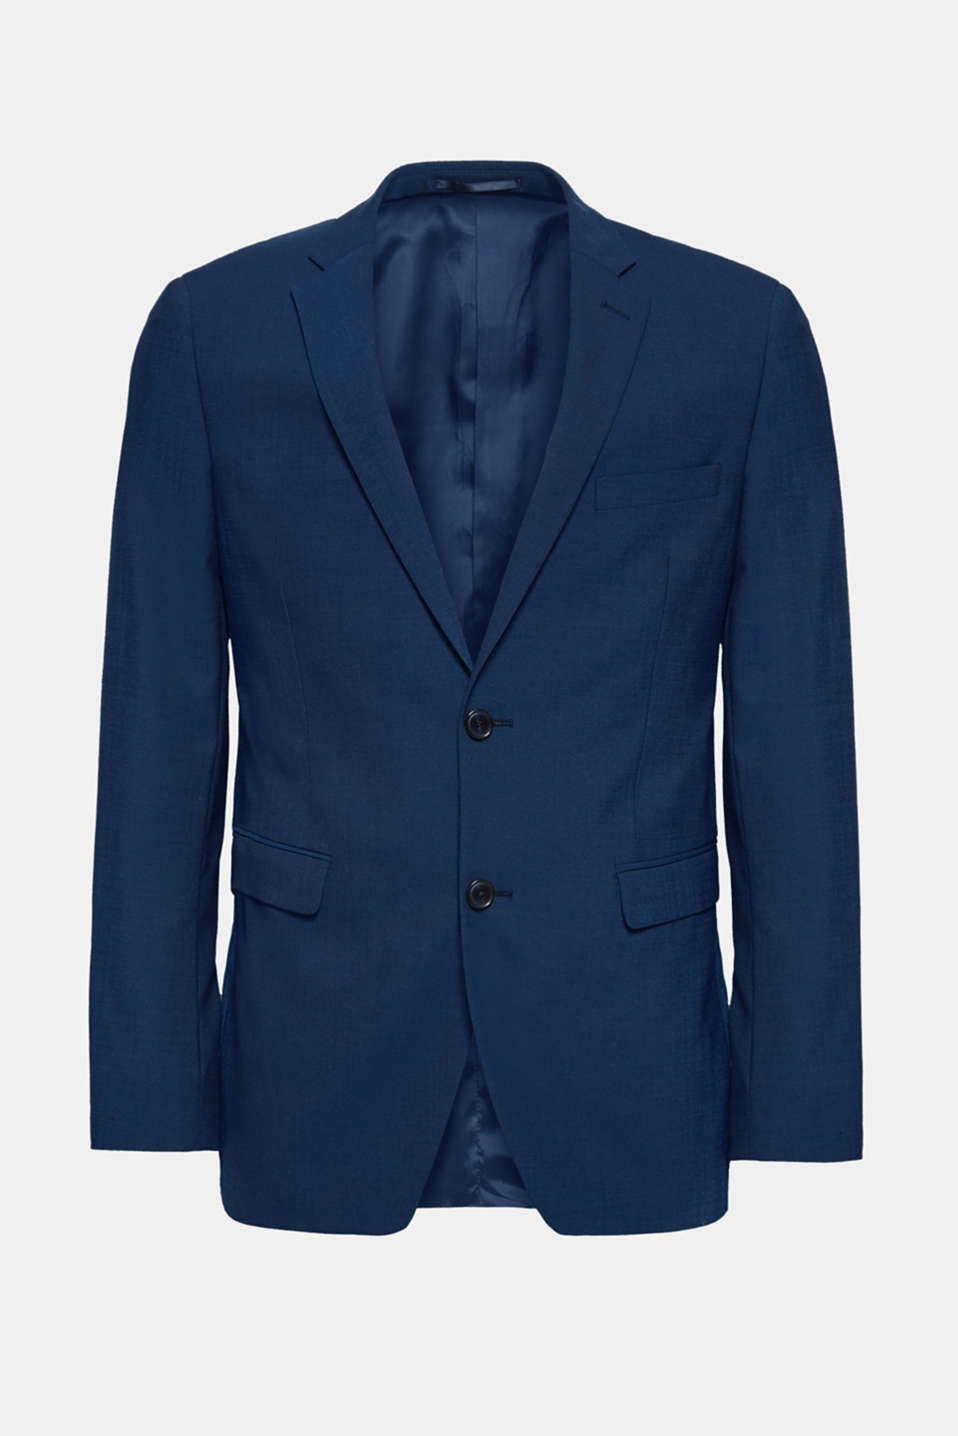 CLASSIC BLUE mix + match: sports jacket, NAVY, detail image number 6